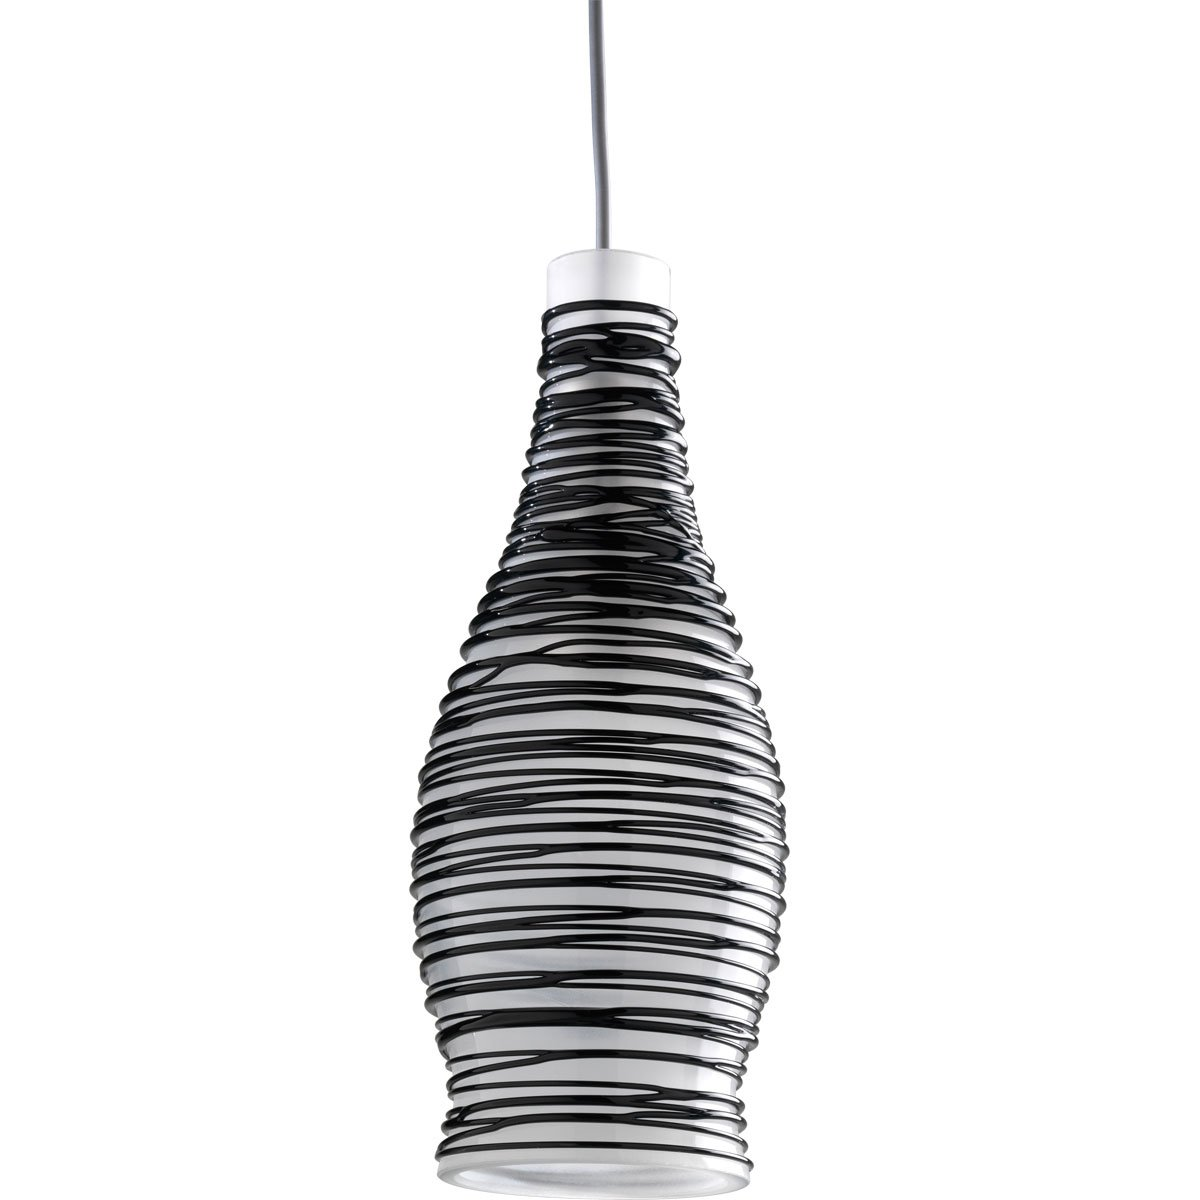 Progress Lighting P6178-09BW 12 Volt Low Voltage Mini-Pendant Wine Bottle with White Glass and Black Pencil Wrap, Brushed Nickel